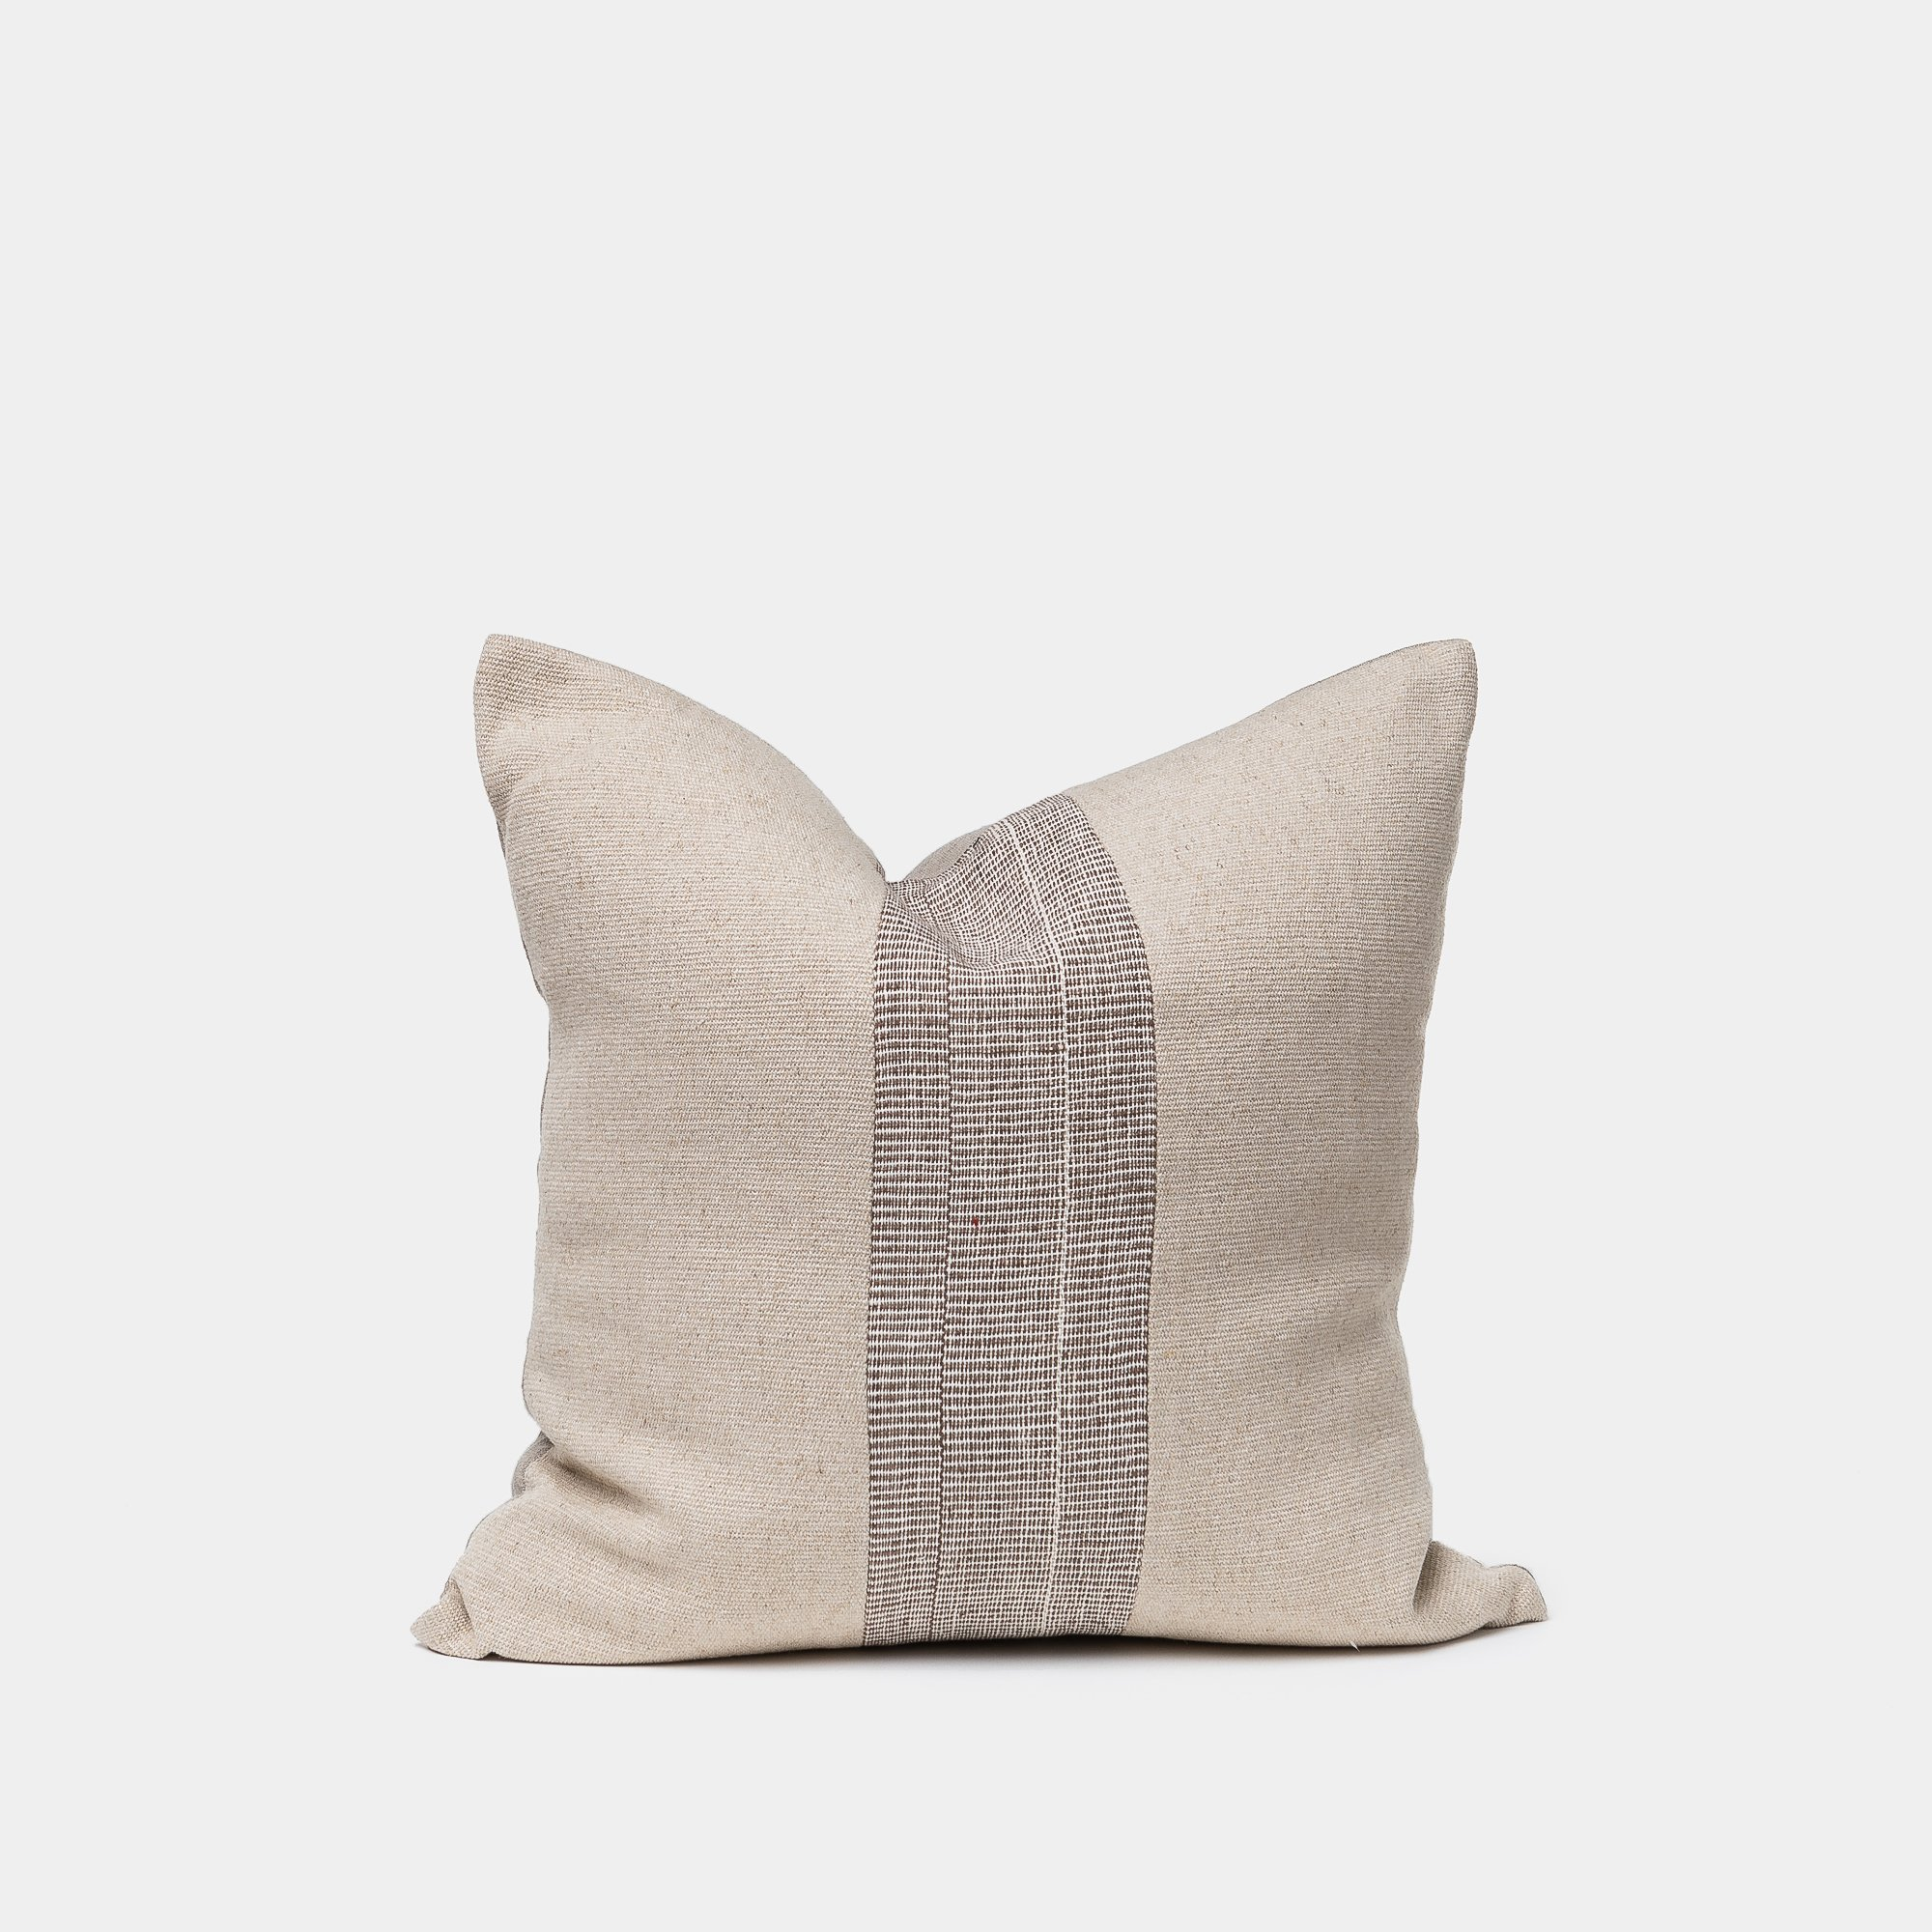 ALL-SORTS-OF-SHOPPE-ZAINO-PILLOW